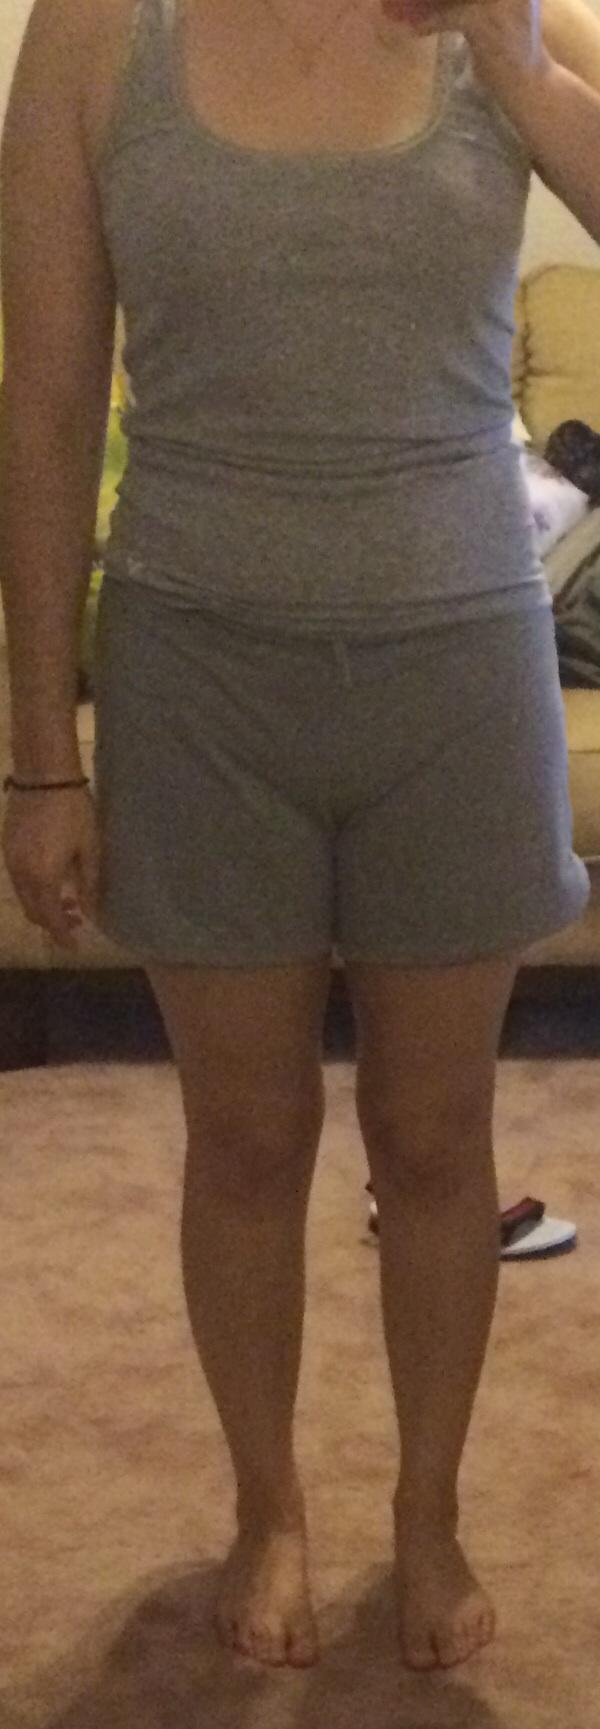 What body shape do I have ?